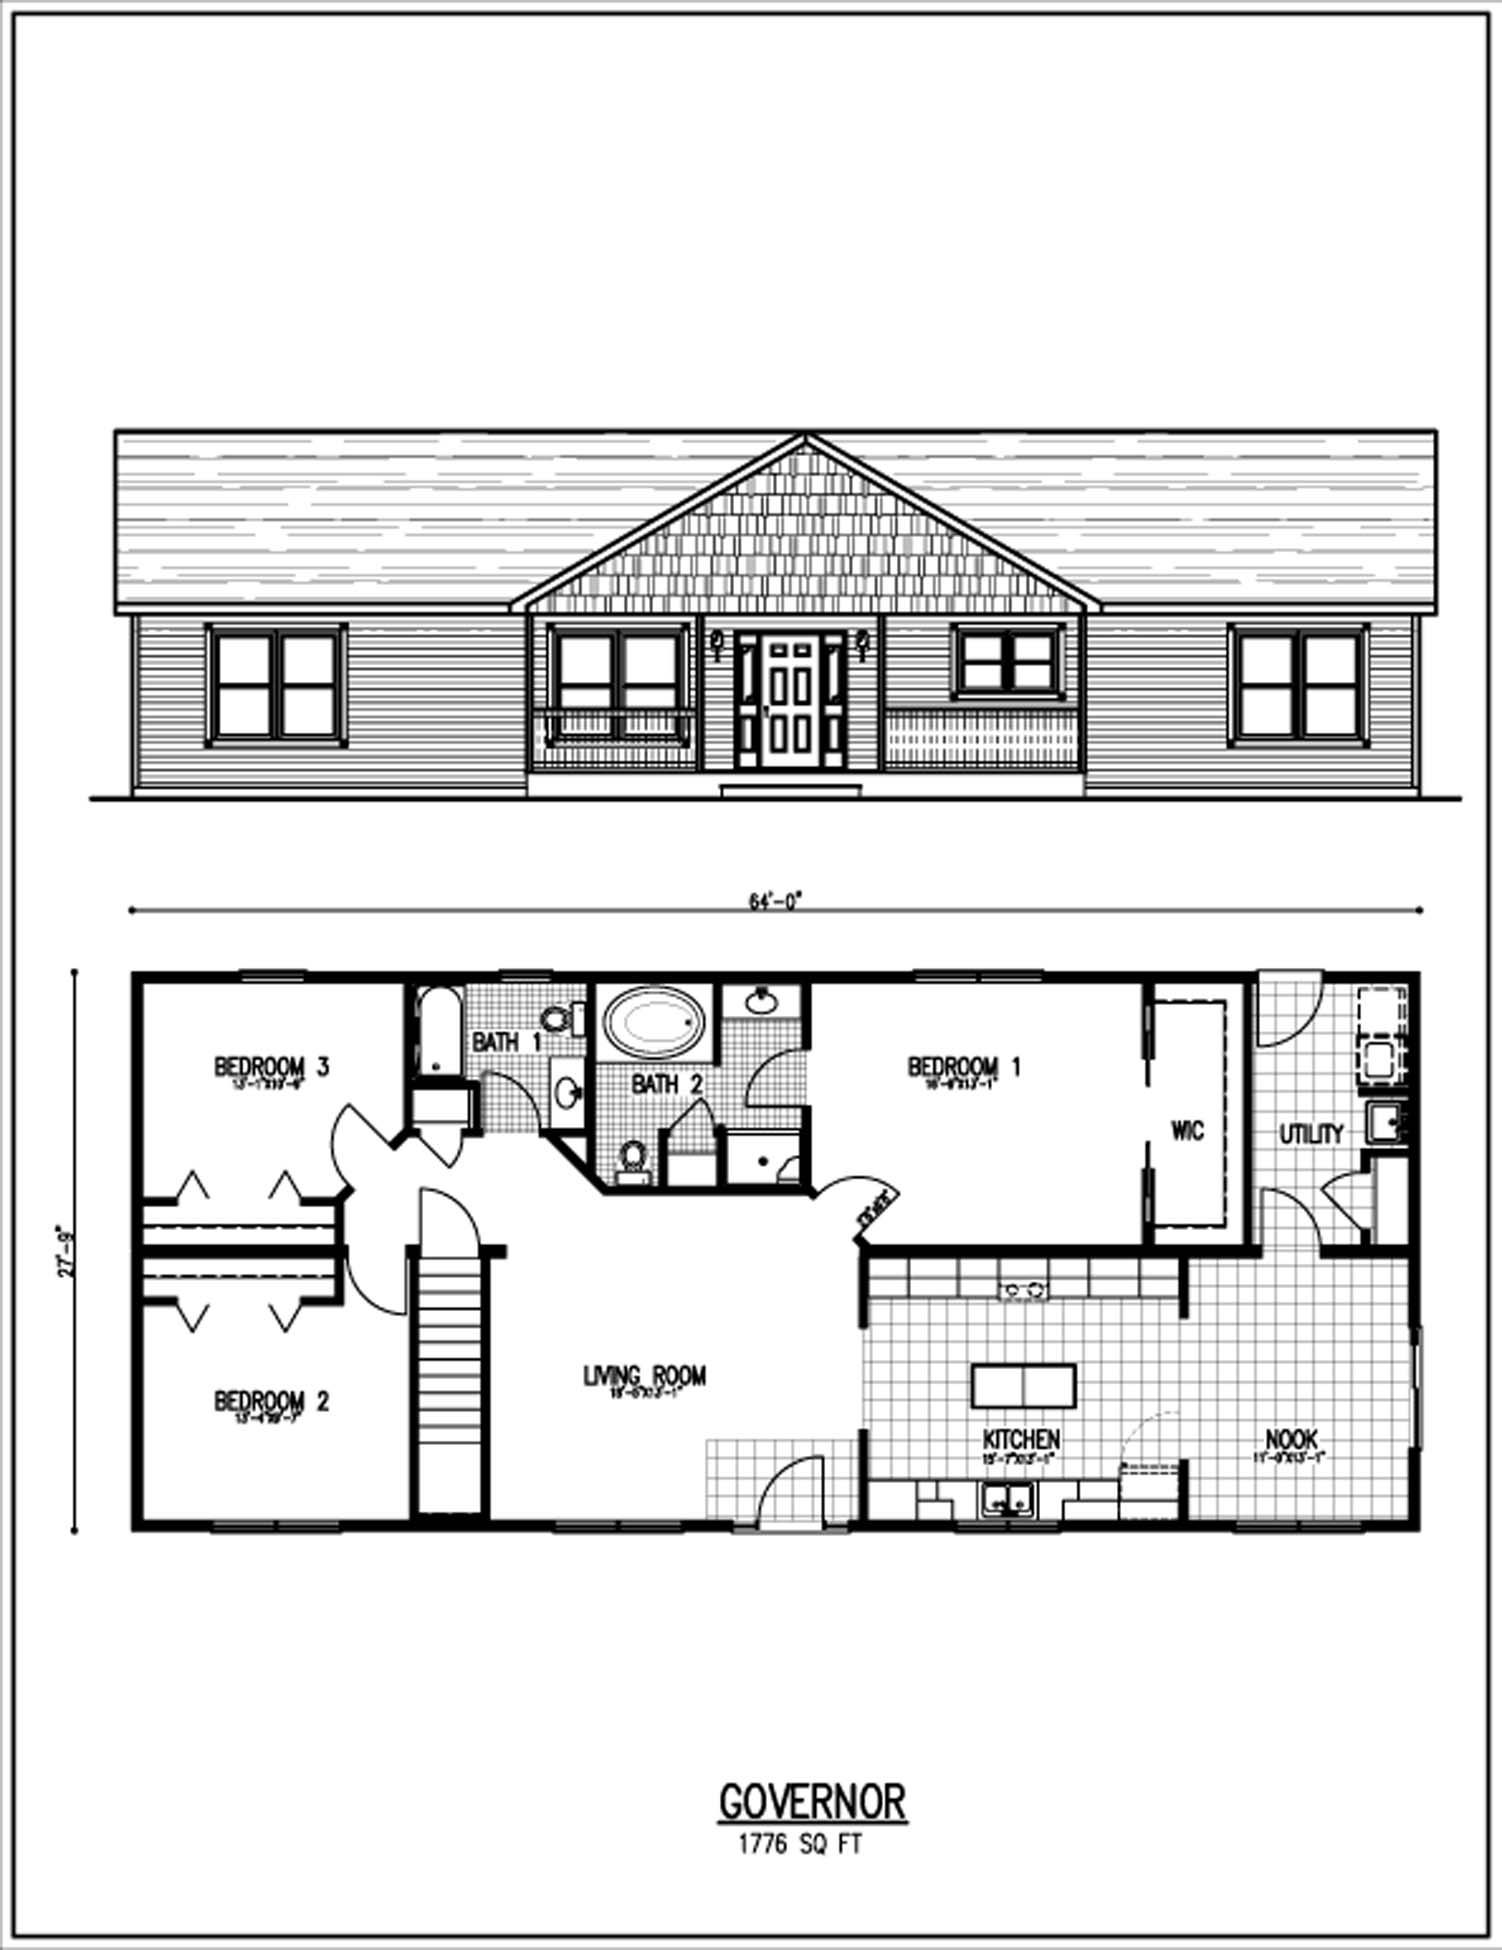 Floor plans by shawam082498 on pinterest floor plans for Ranch style house plans